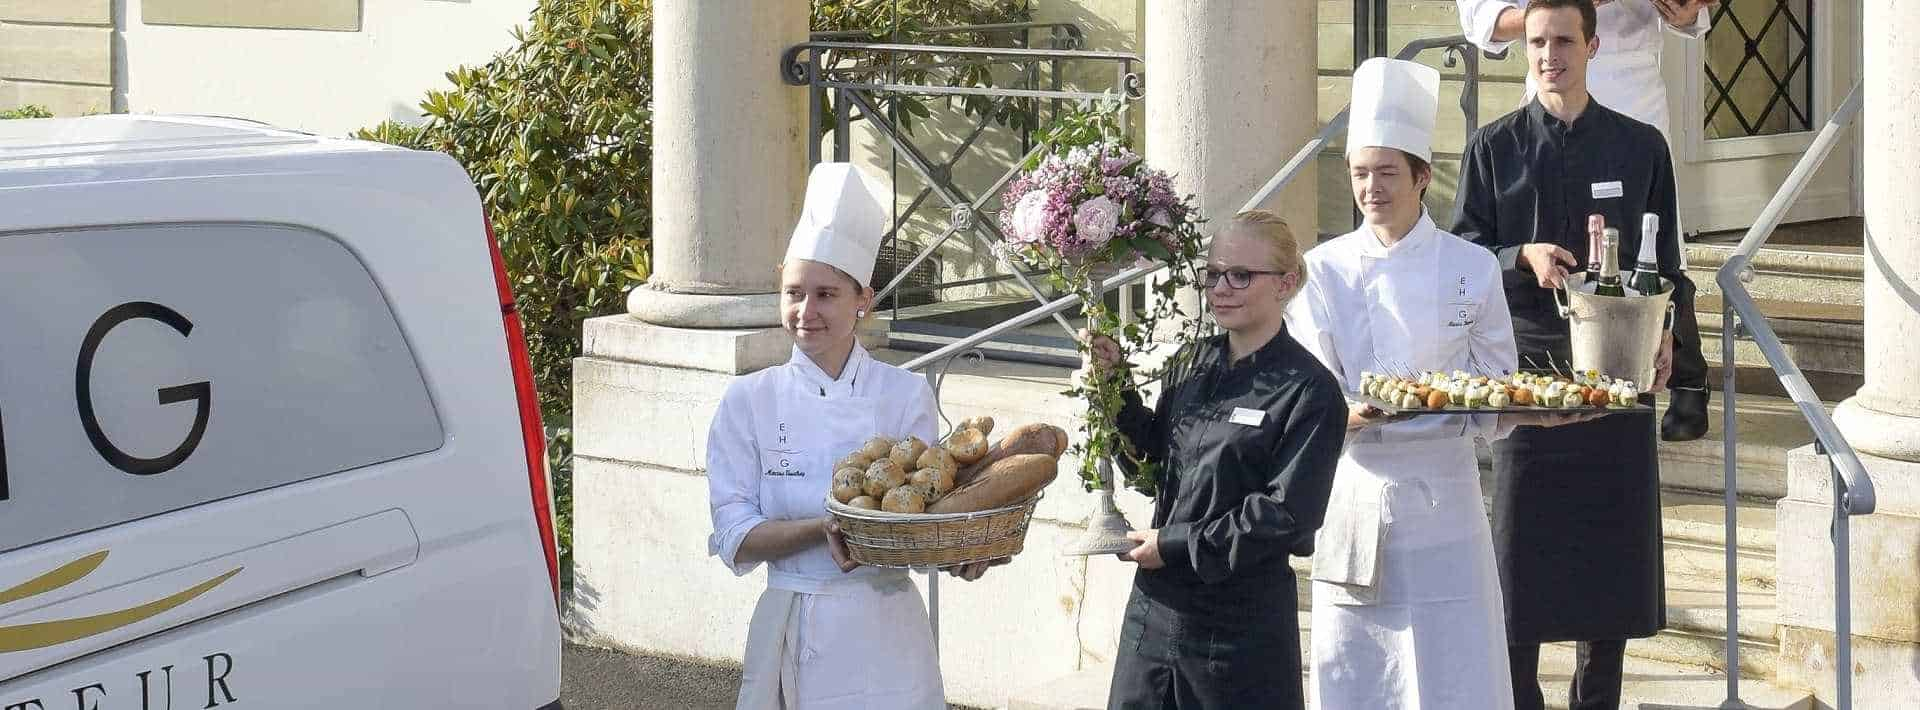 Best Catering Service in Geneva Service traiteur pour société EHG Traiteur- Catering Service | One of the Best Caterer in Geneva